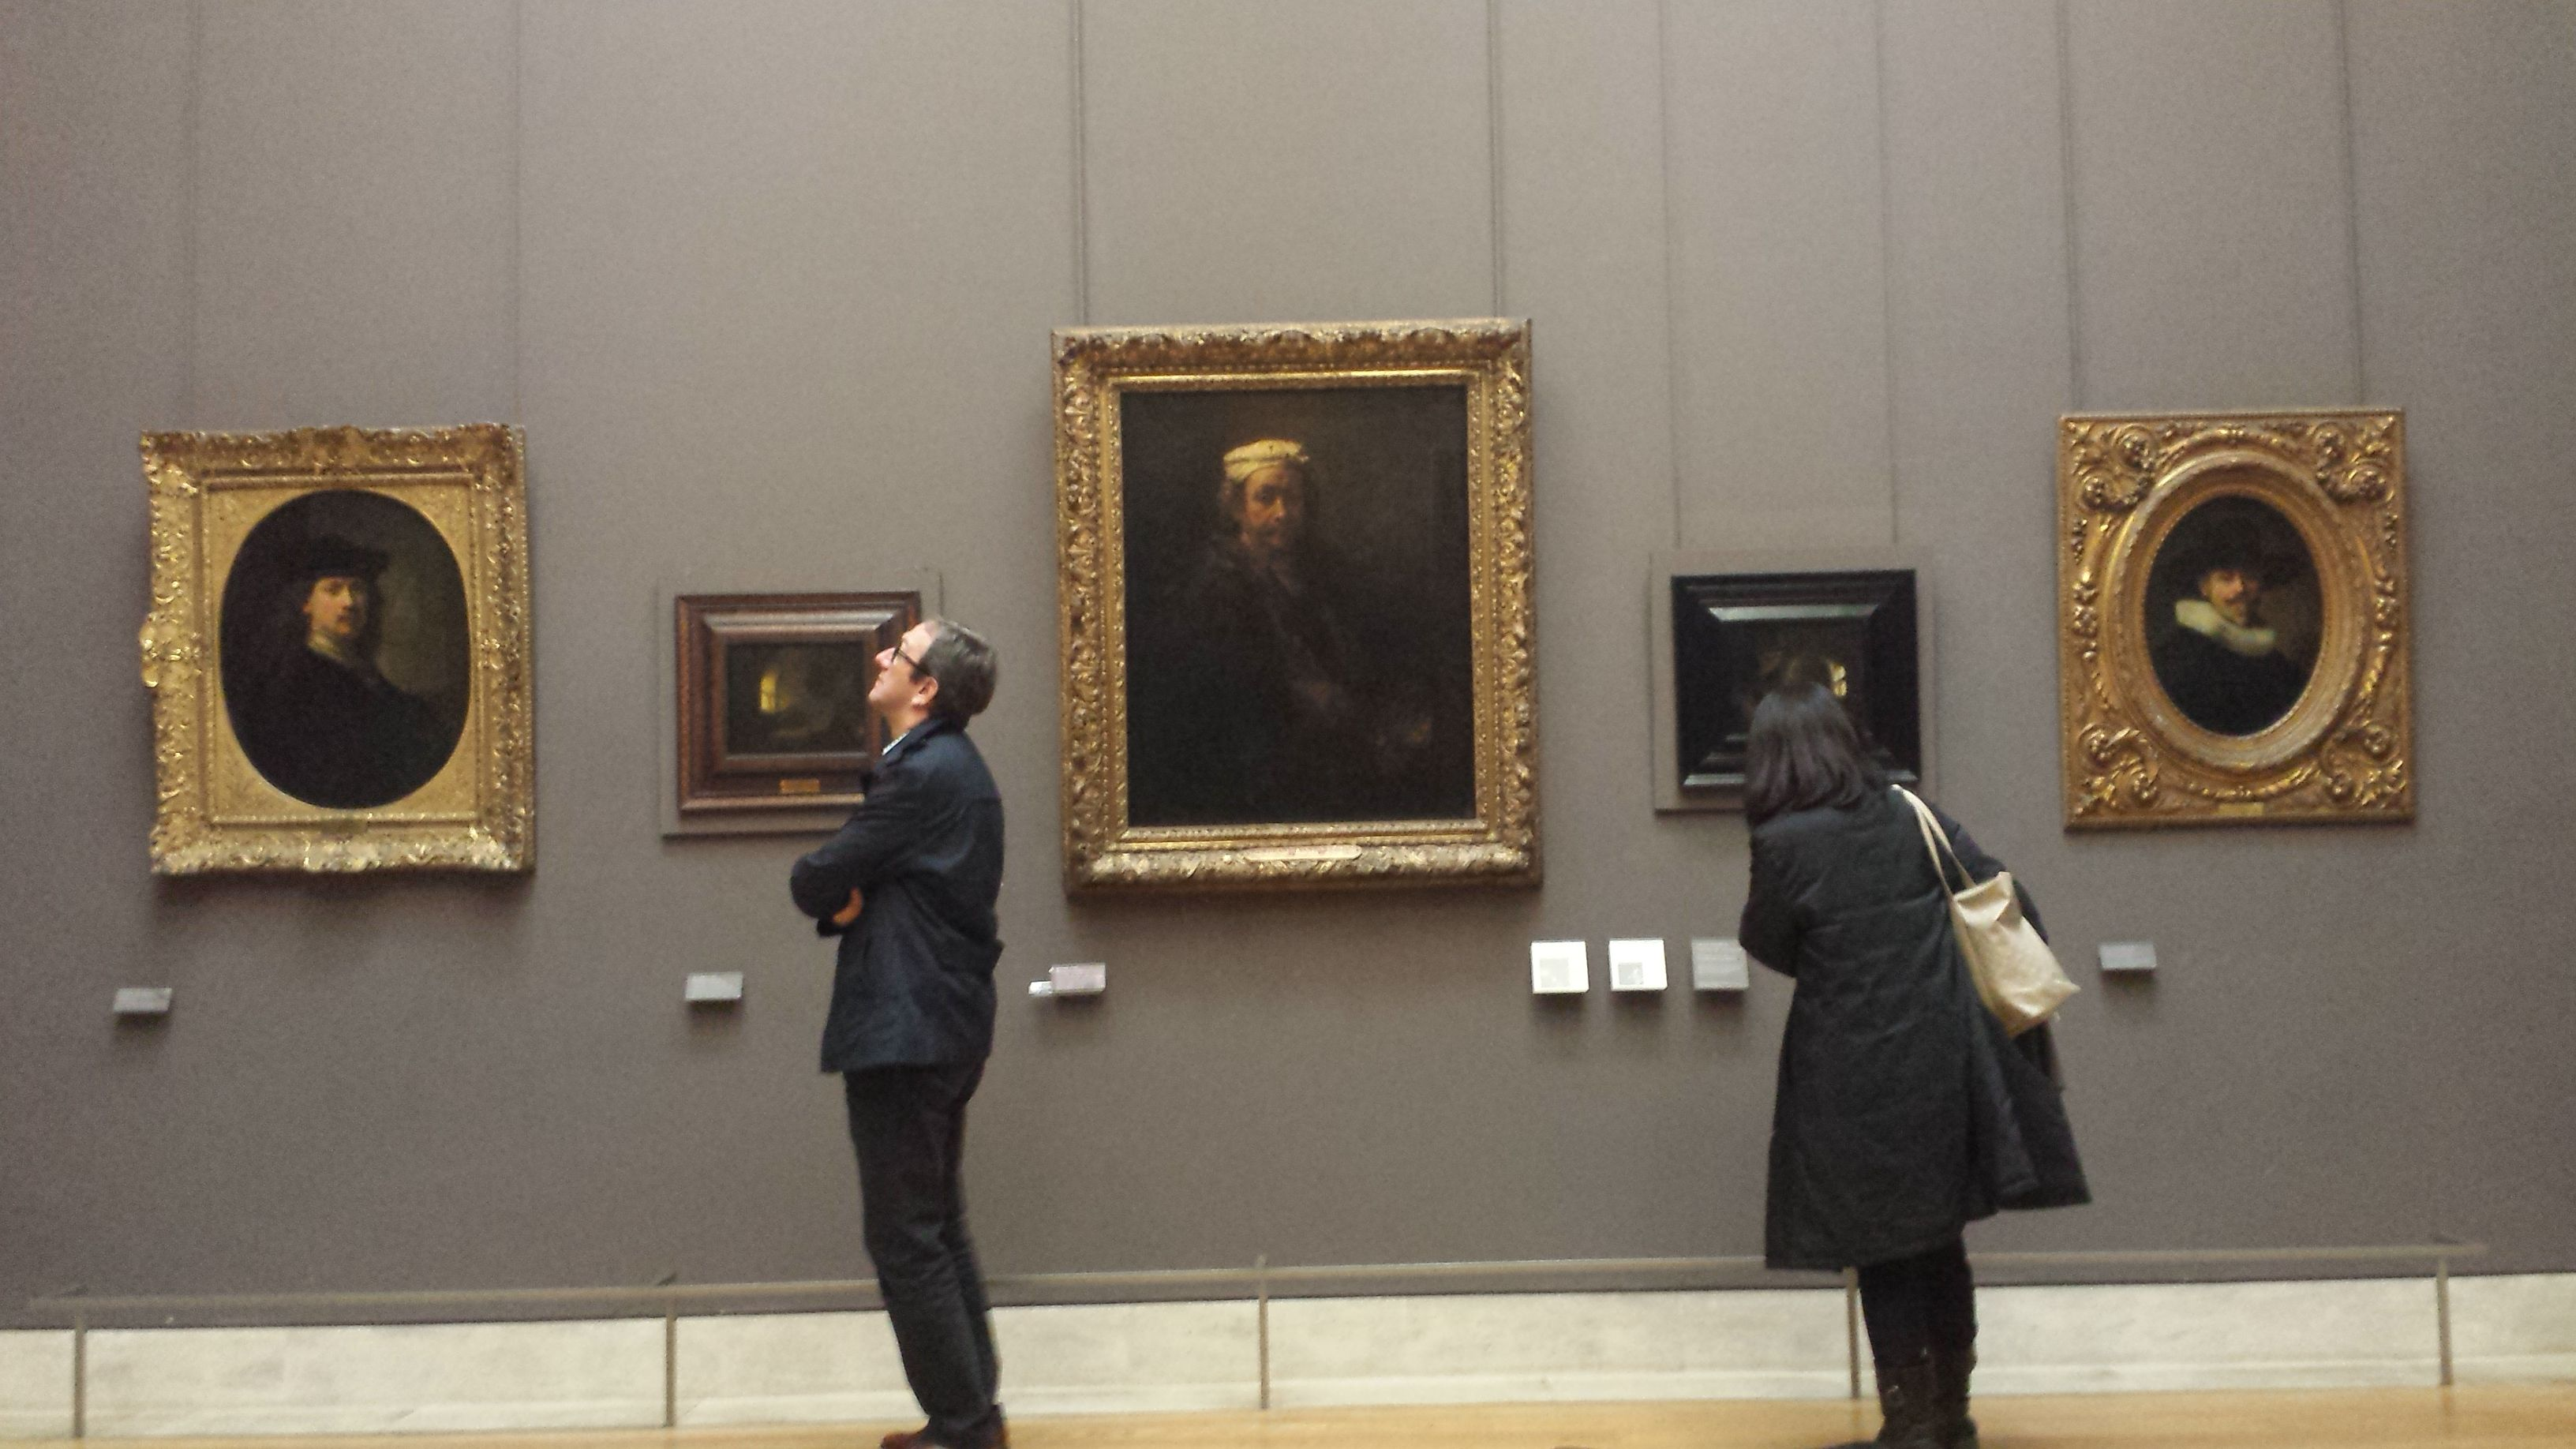 One of the last rooms we visited was full of Rembrandts, who was apparently very fond of selfies somehow